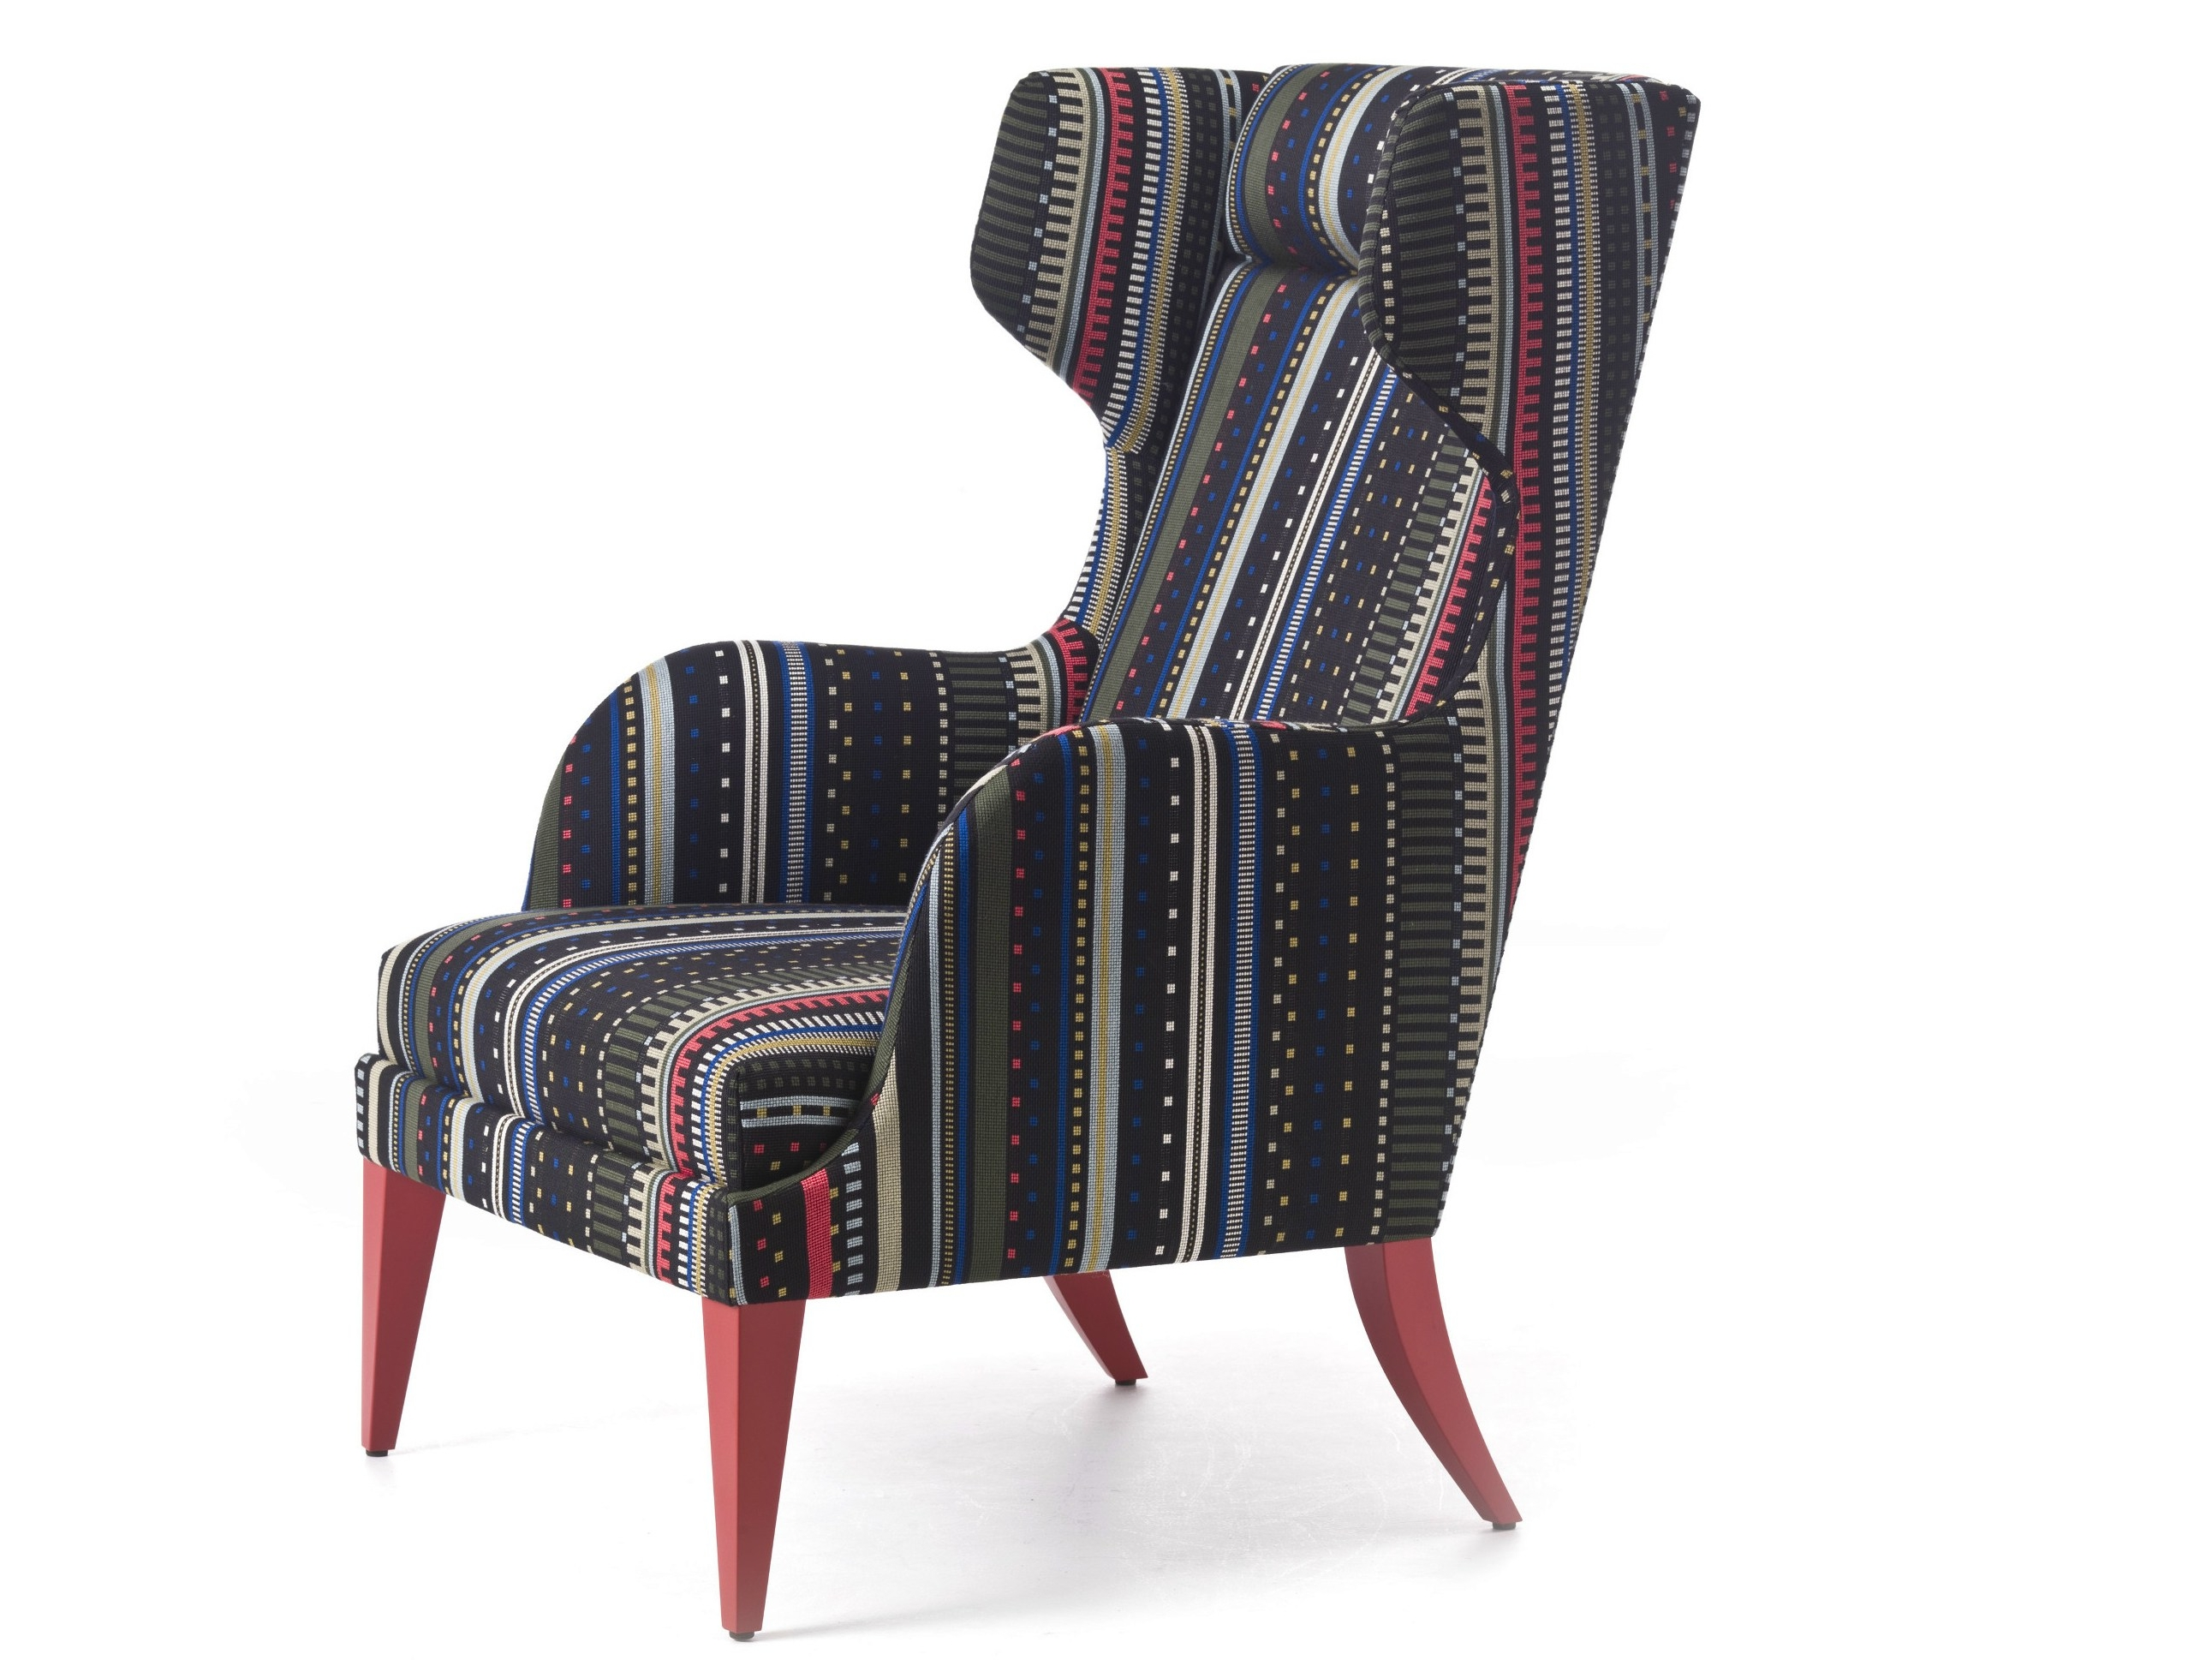 Onda poltrona bergere by very wood design werther toffoloni for Poltrona bergere